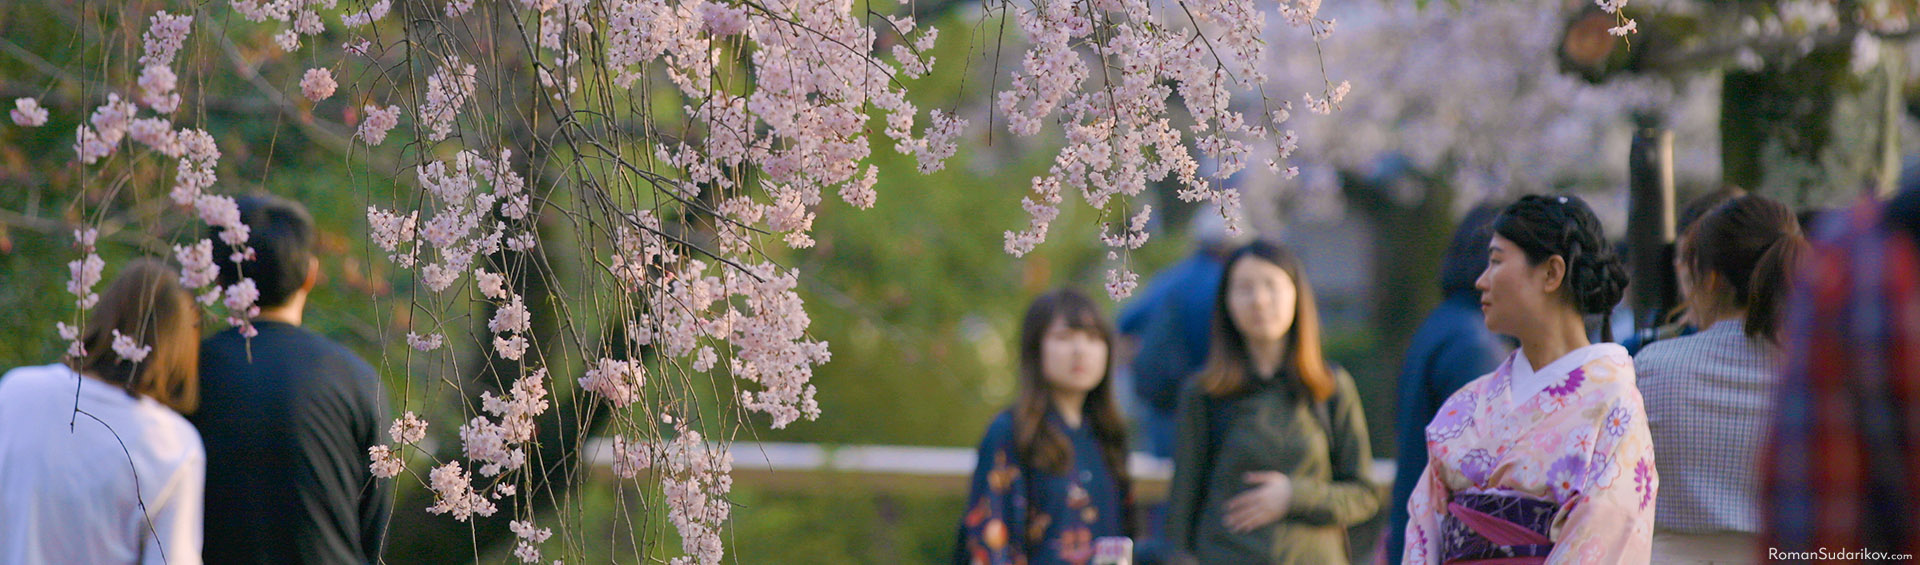 A woman in a beautiful kimono is viewing cherry blossom flowers at Philosopher's Path in Kyoto.